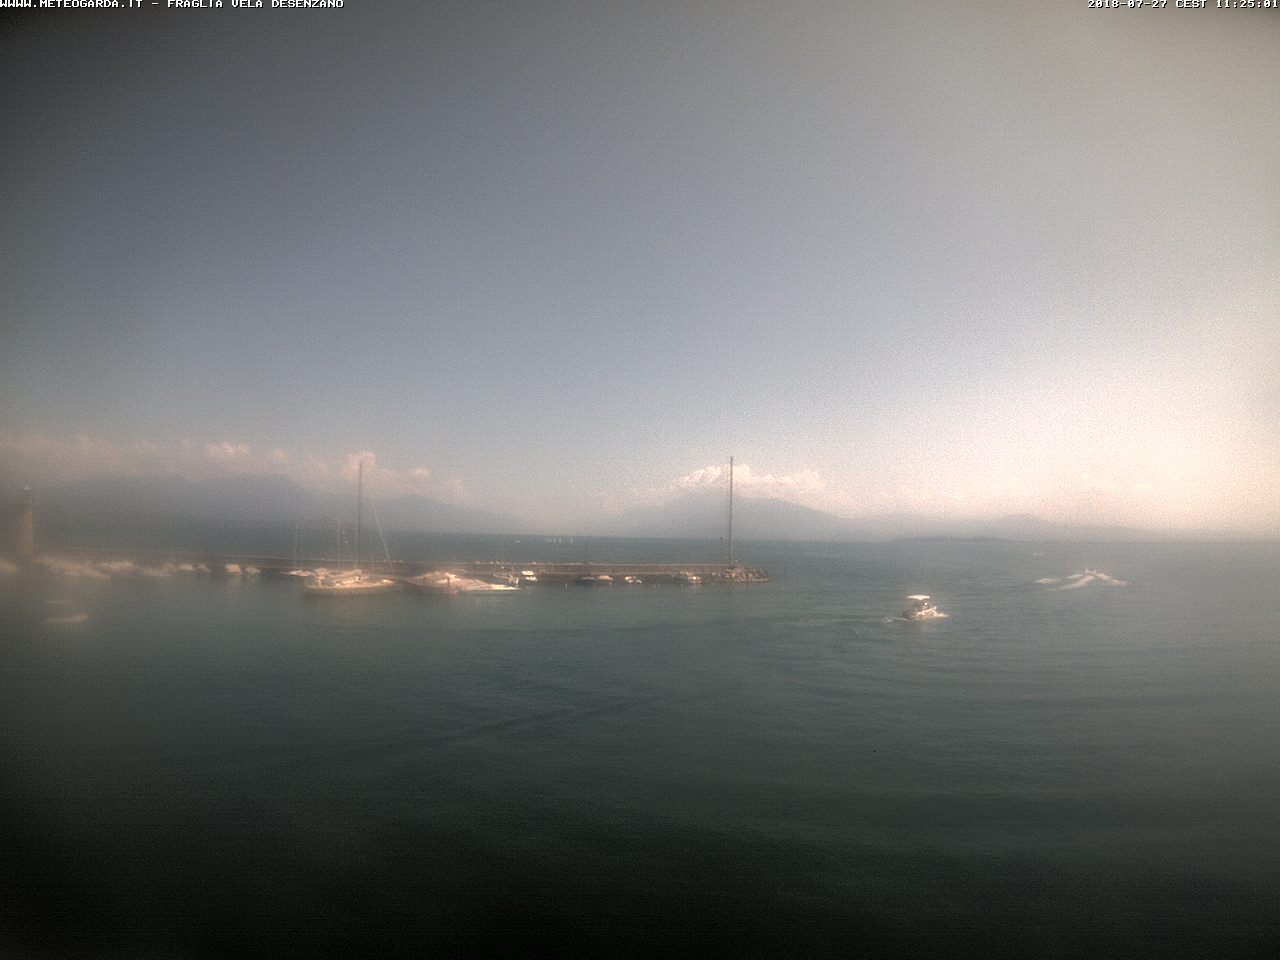 Desenzano webcam - Monte Baldo Harbour webcam, Lombardy, Brescia